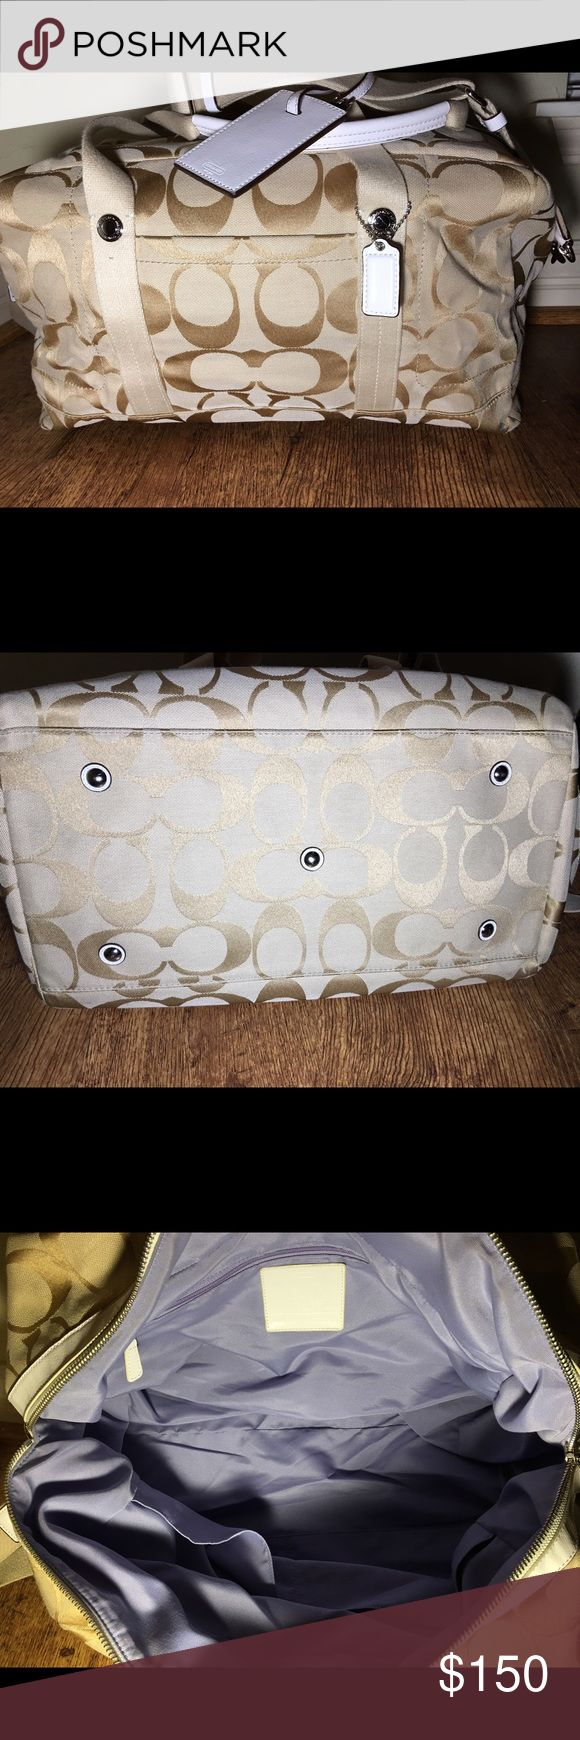 Coach Duffle Bag Beautiful and Spacious Coach Duffle Bag. Used a few times for business travel trips. No damage or wear and tear. Like new! Coach Bags Travel Bags